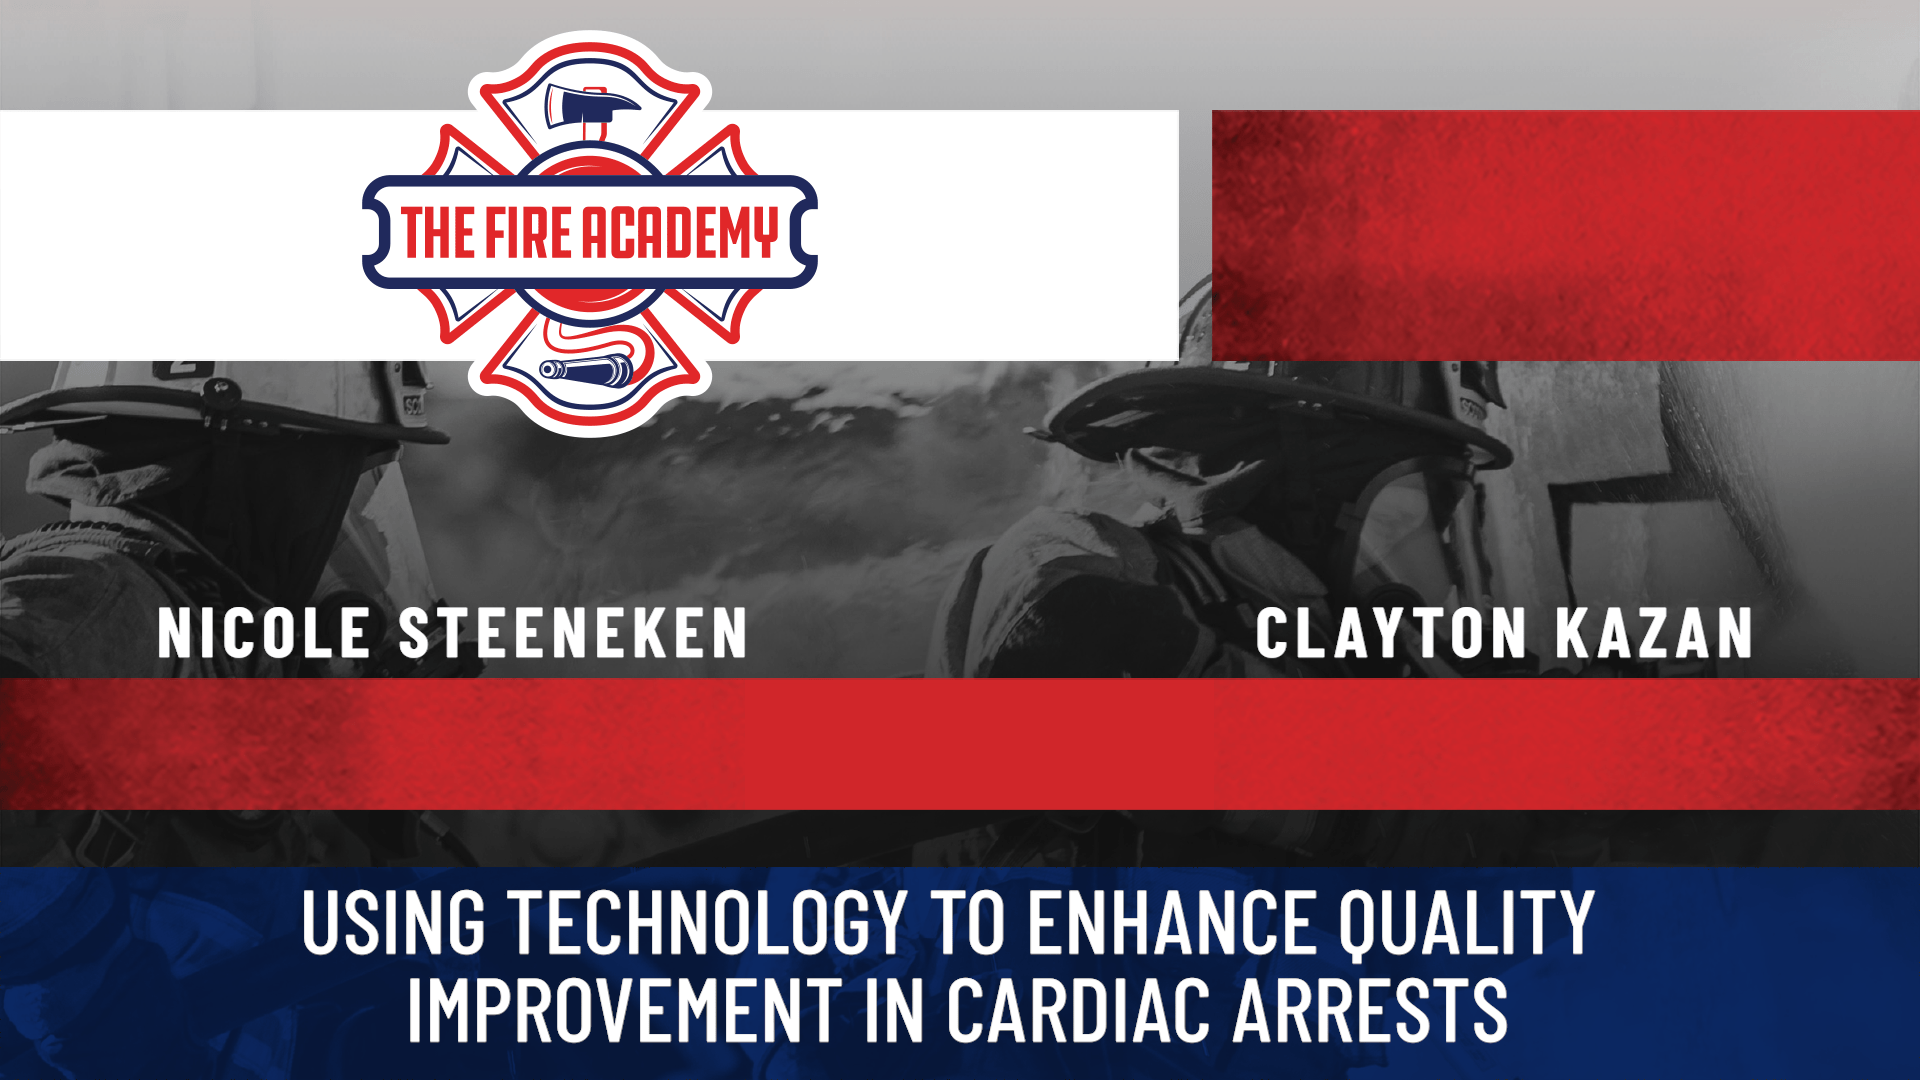 Using Technology to Enhance Quality Improvement in Cardiac Arrests